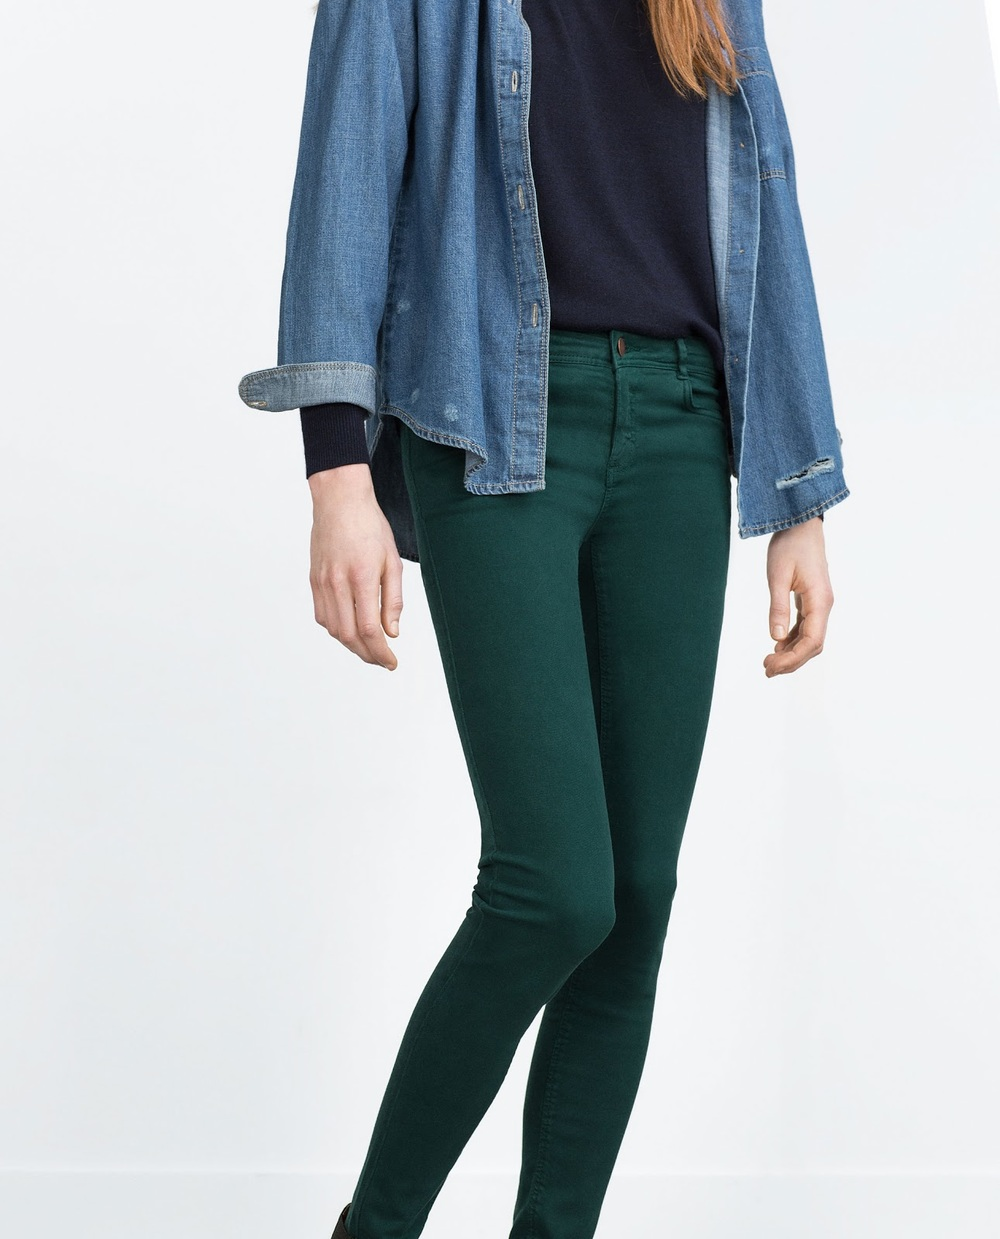 Zara Jeggings in Bottle Green, $36 at    Zara.com   .